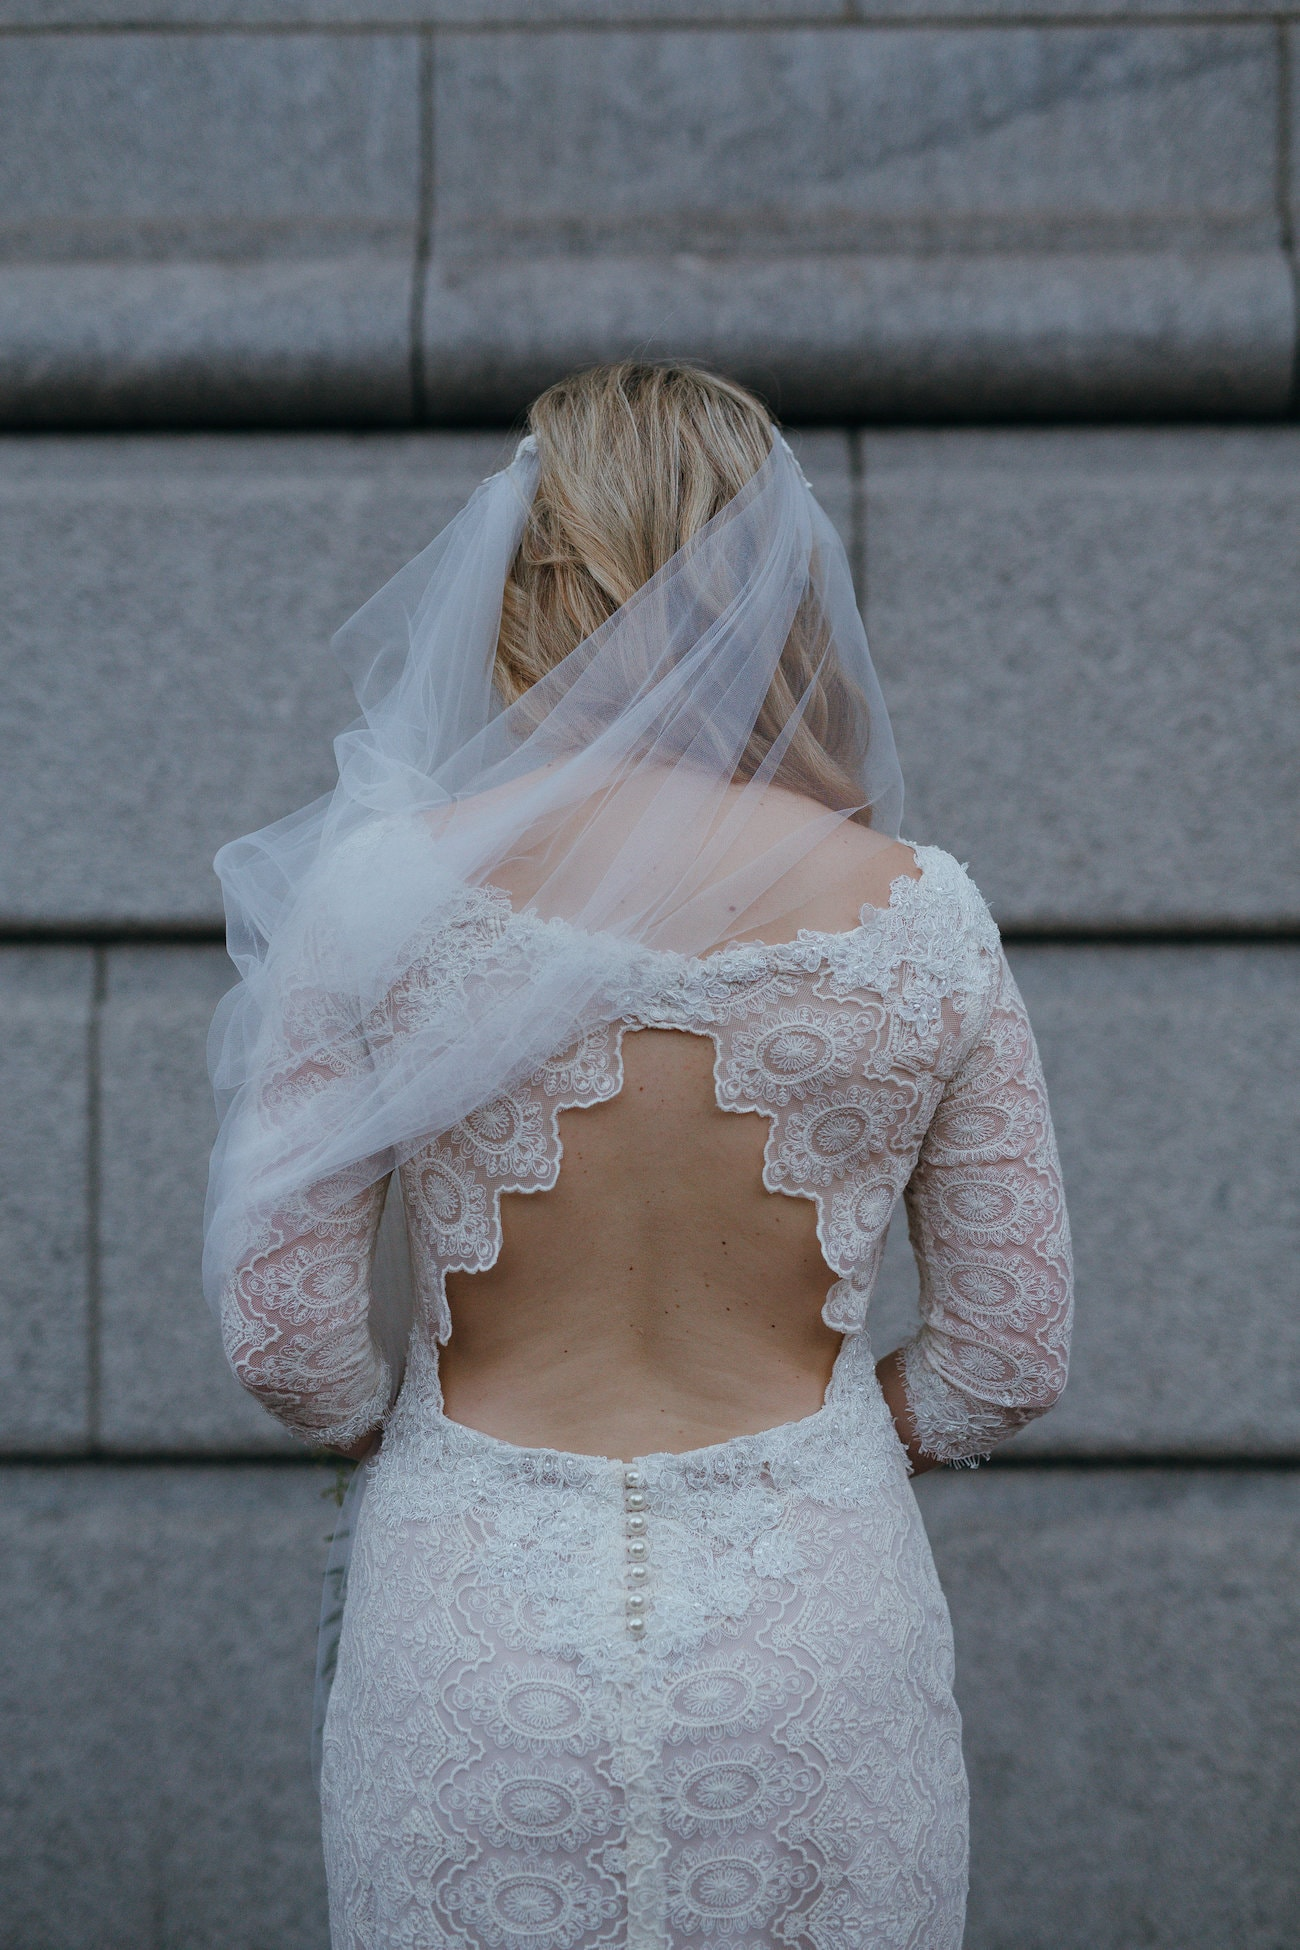 Keyhole Back Lace Wedding Dress | Vintage Chic City Wedding at the Cape Town Club | Credit: Duane Smith